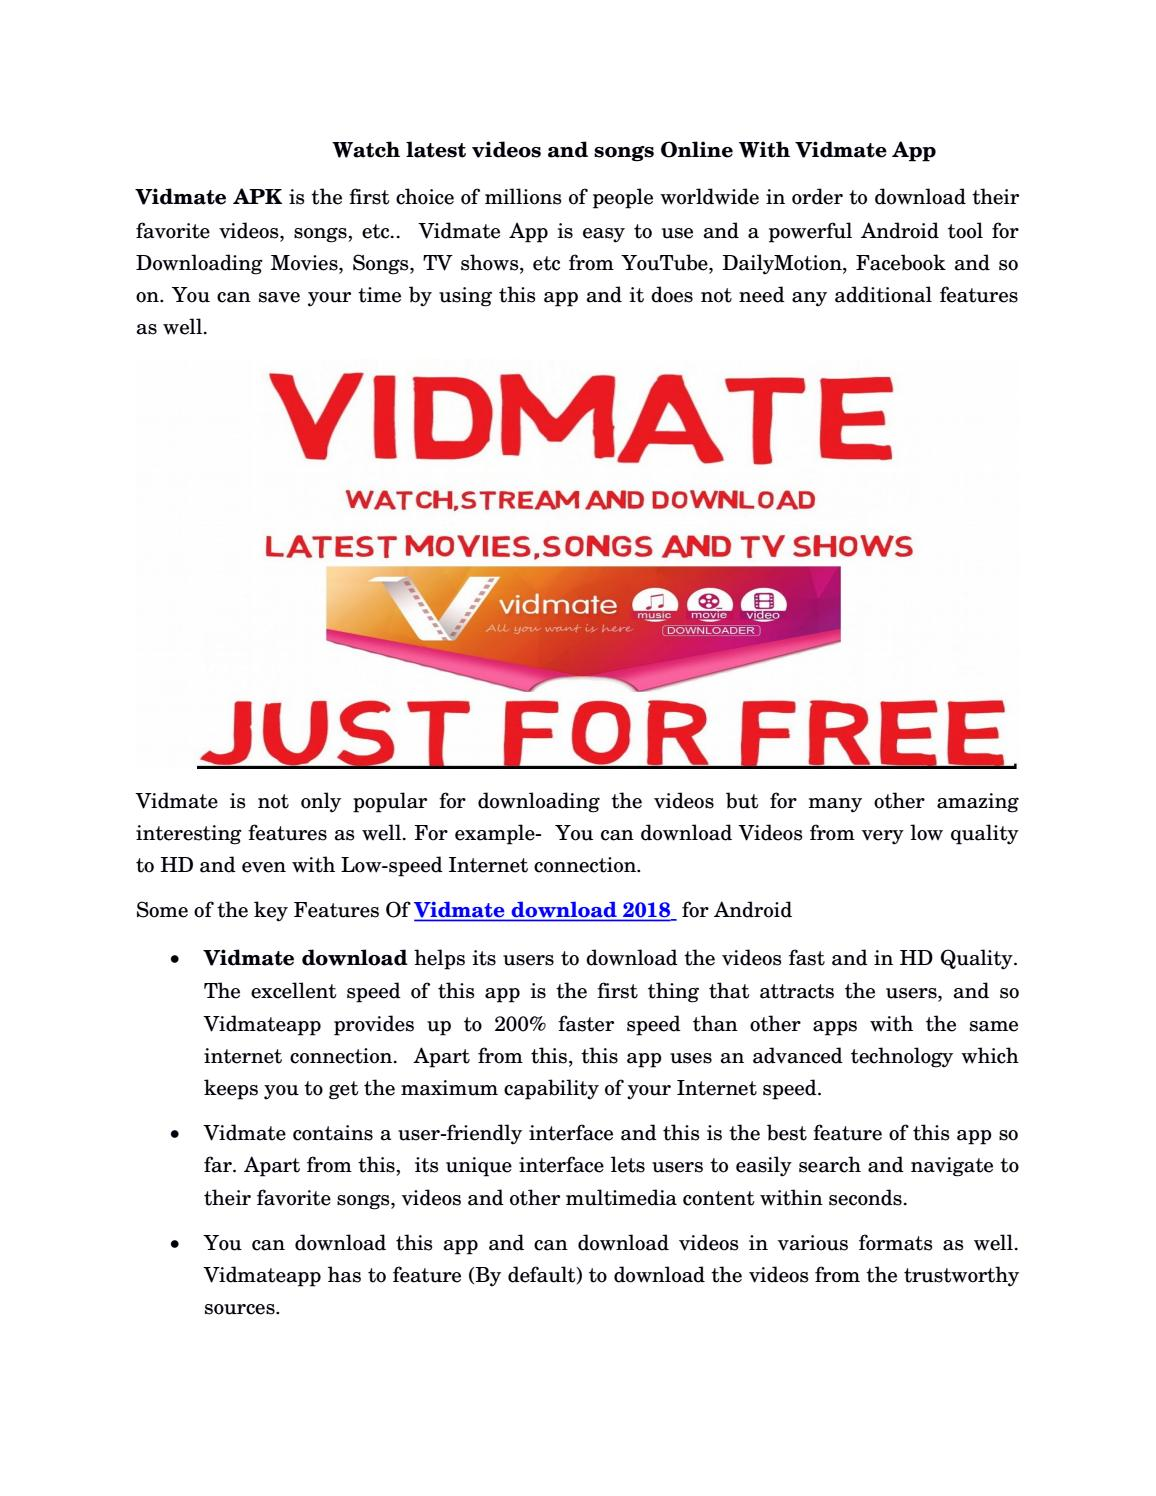 Watch latest videos and songs online with vidmate app by